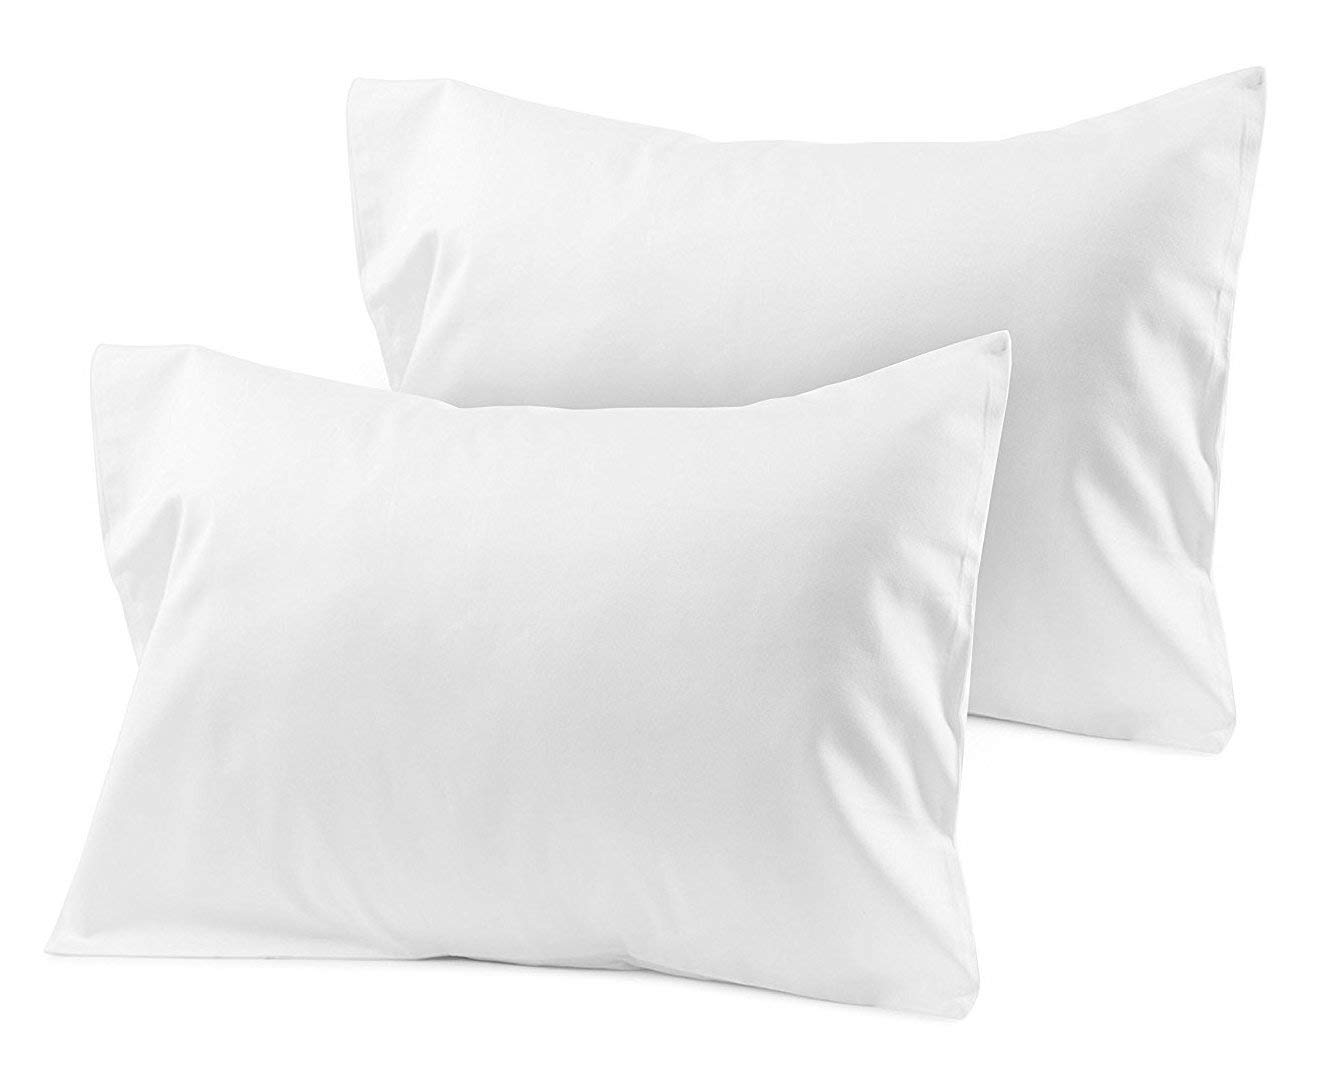 Travel Pillowcase 12X16 500 Thread Count Organic Cotton Set of 2 Toddler Pillowcase With Zipper Closer White Solid With 100% Egyptian Cotton (Toddler Travel 12X16 White Solid)